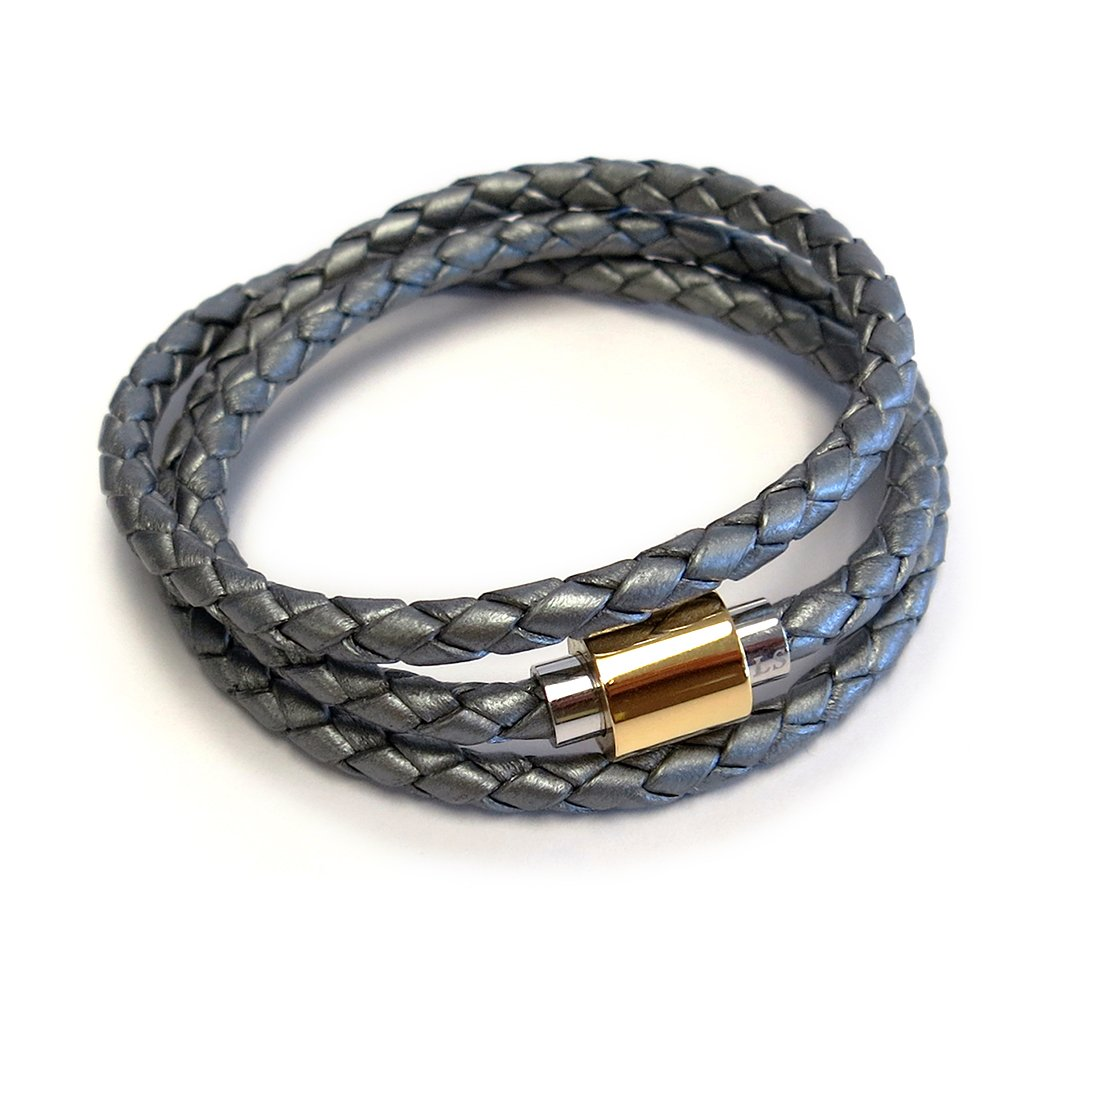 Liza Schwartz Two-Tone Clasp Rich Braided Triple Wrap Premium Leather Bracelet for Women in Black, Red, Silver and More Color - Best for Birthday Gift